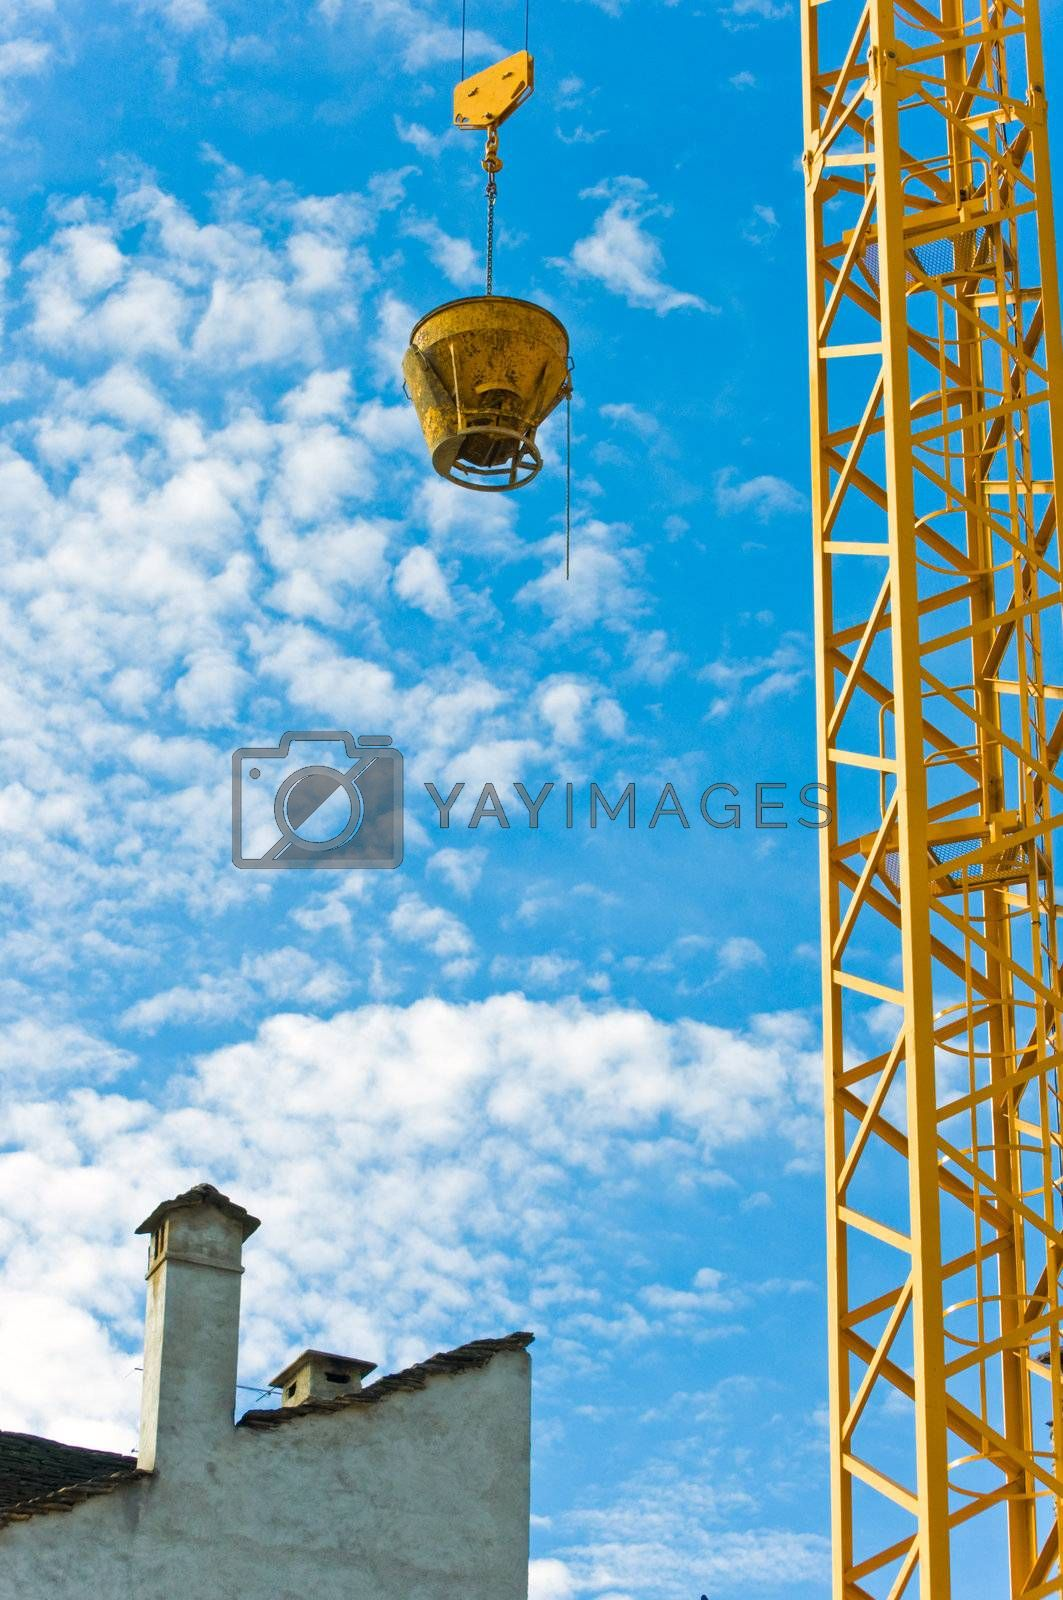 Yellow crane near building standing against blue sky with fluffy clouds.